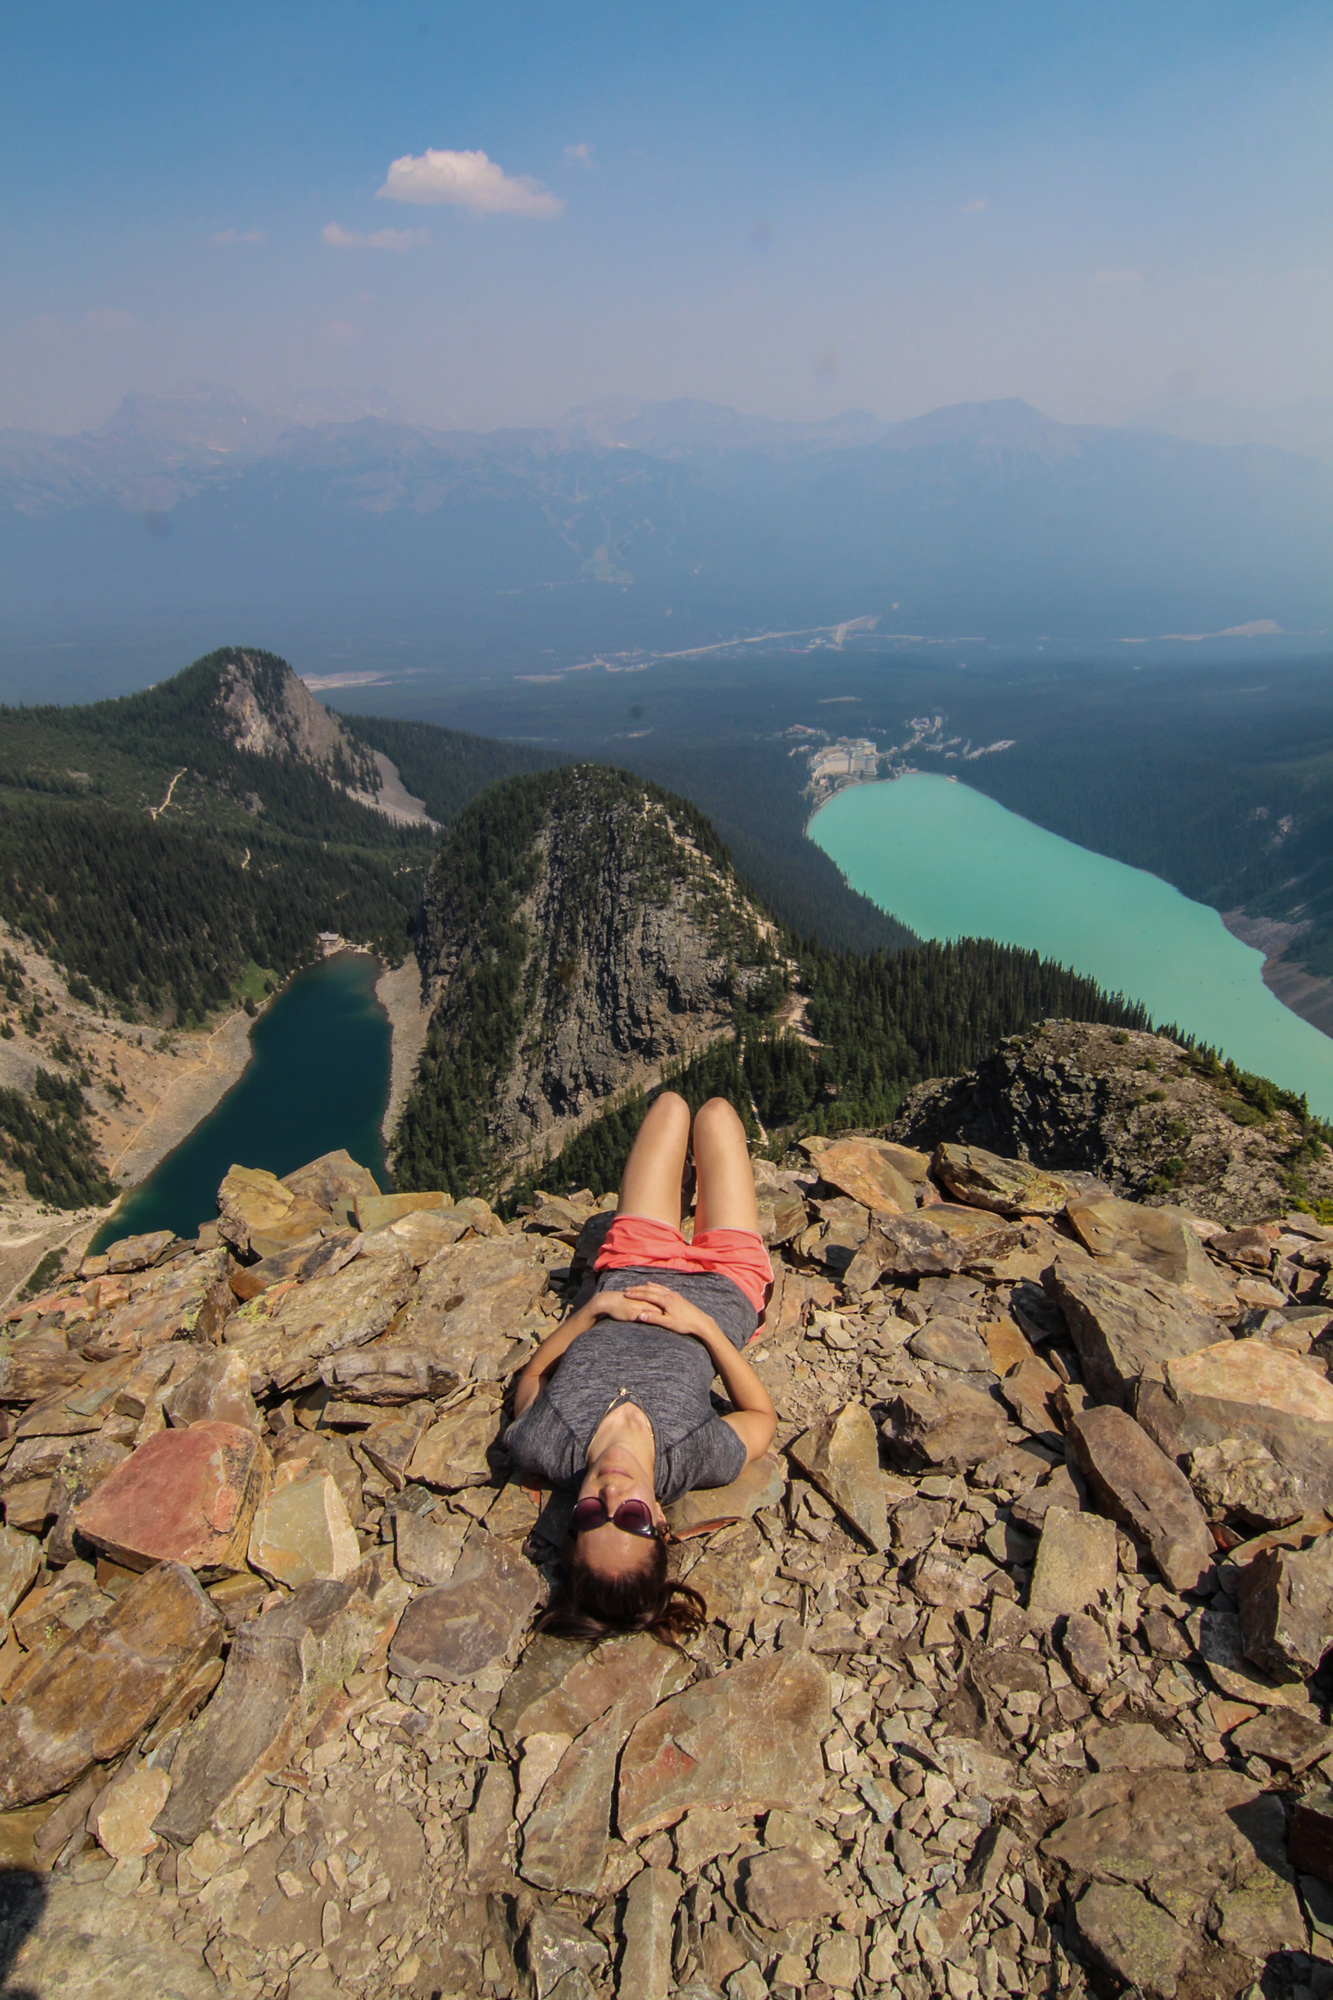 Big Bee Hive and Devil's thumb is one of the best Banff hikes.